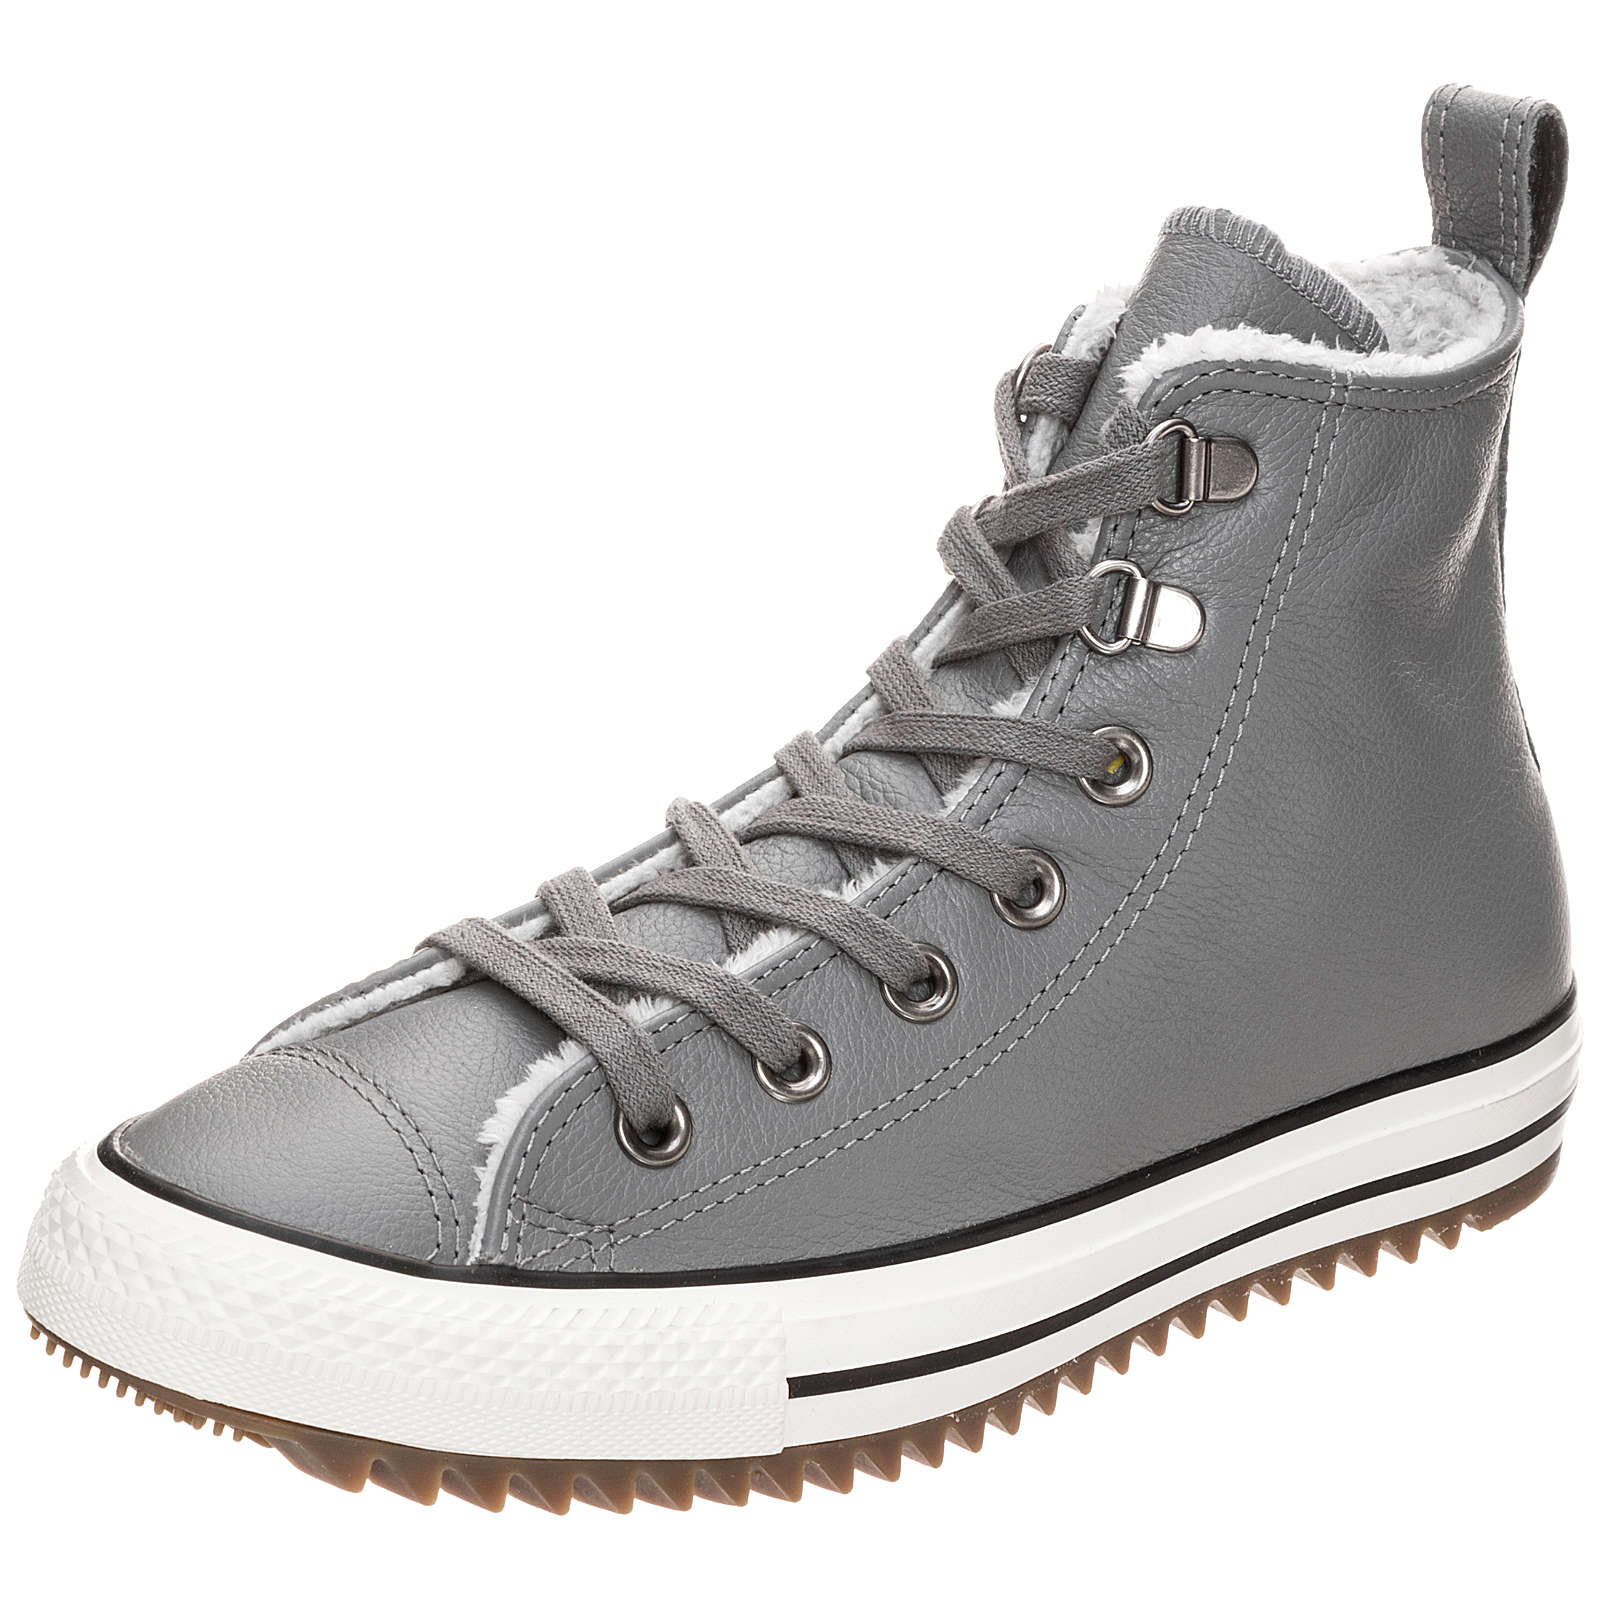 Converse Chuck Taylor All Star Hiker Boot grau Herren Gr. 44,5